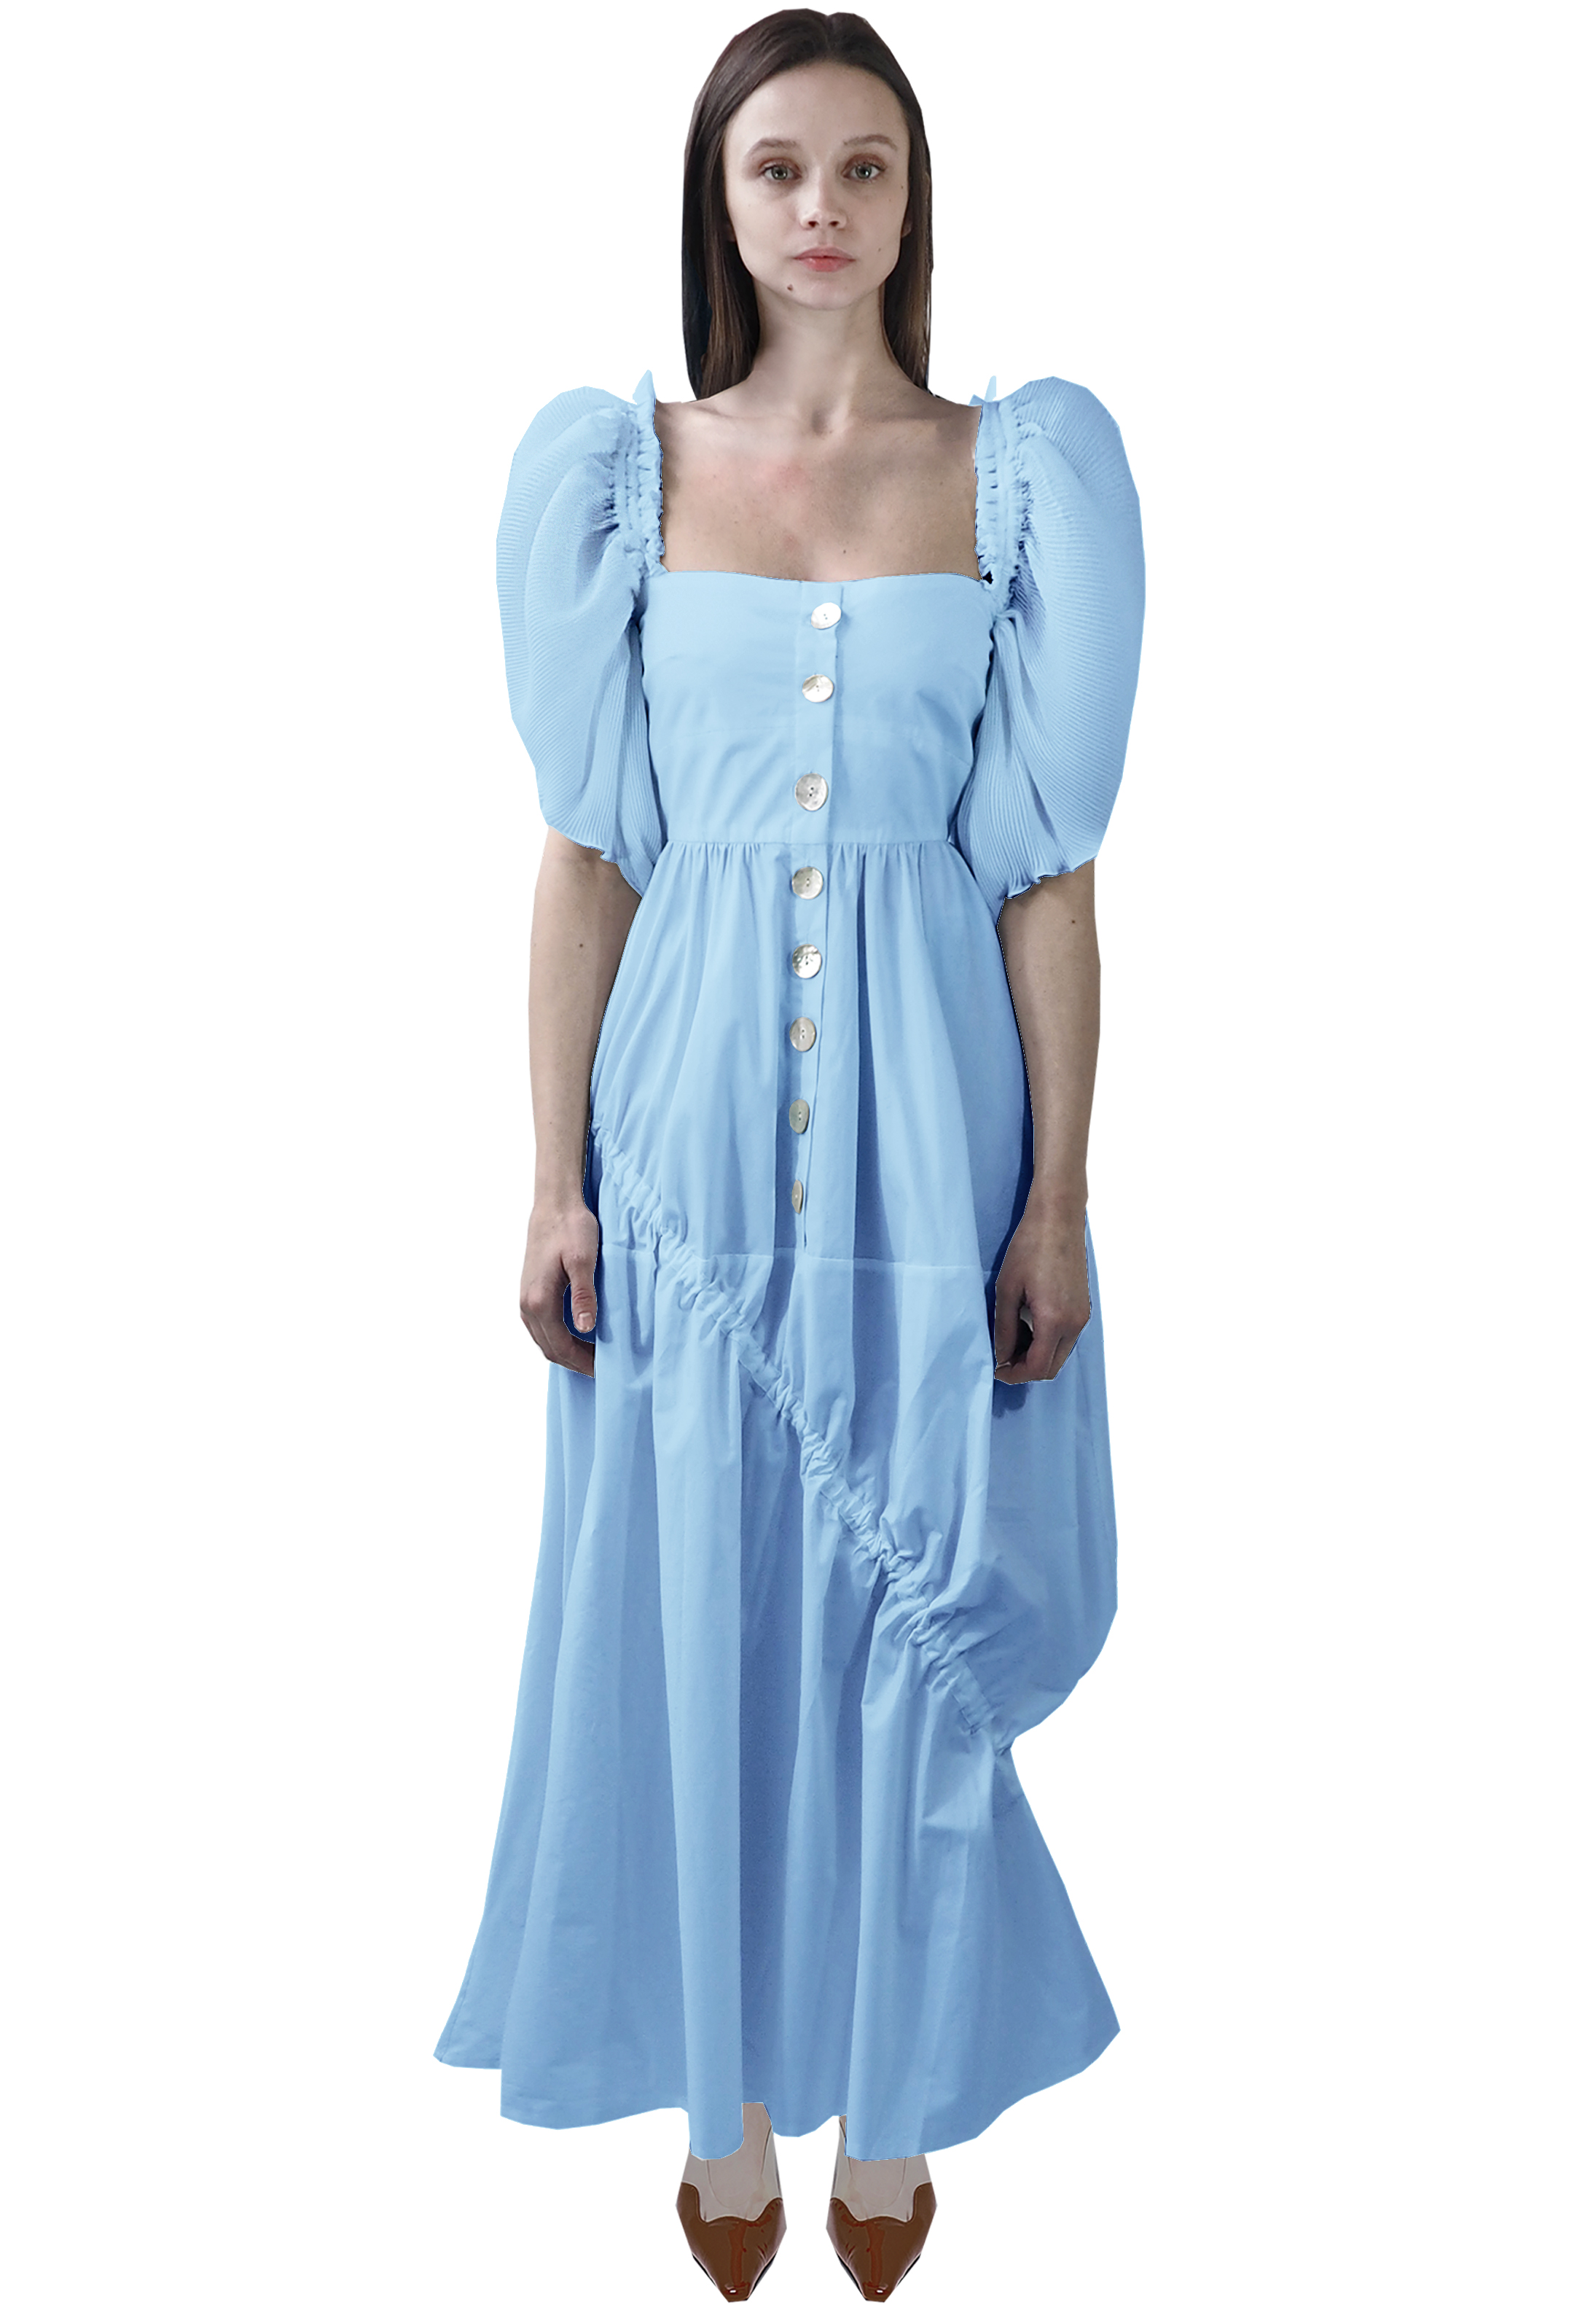 Elena Dress, Candy Blue by Georgia Hardinge on curated-crowd.com